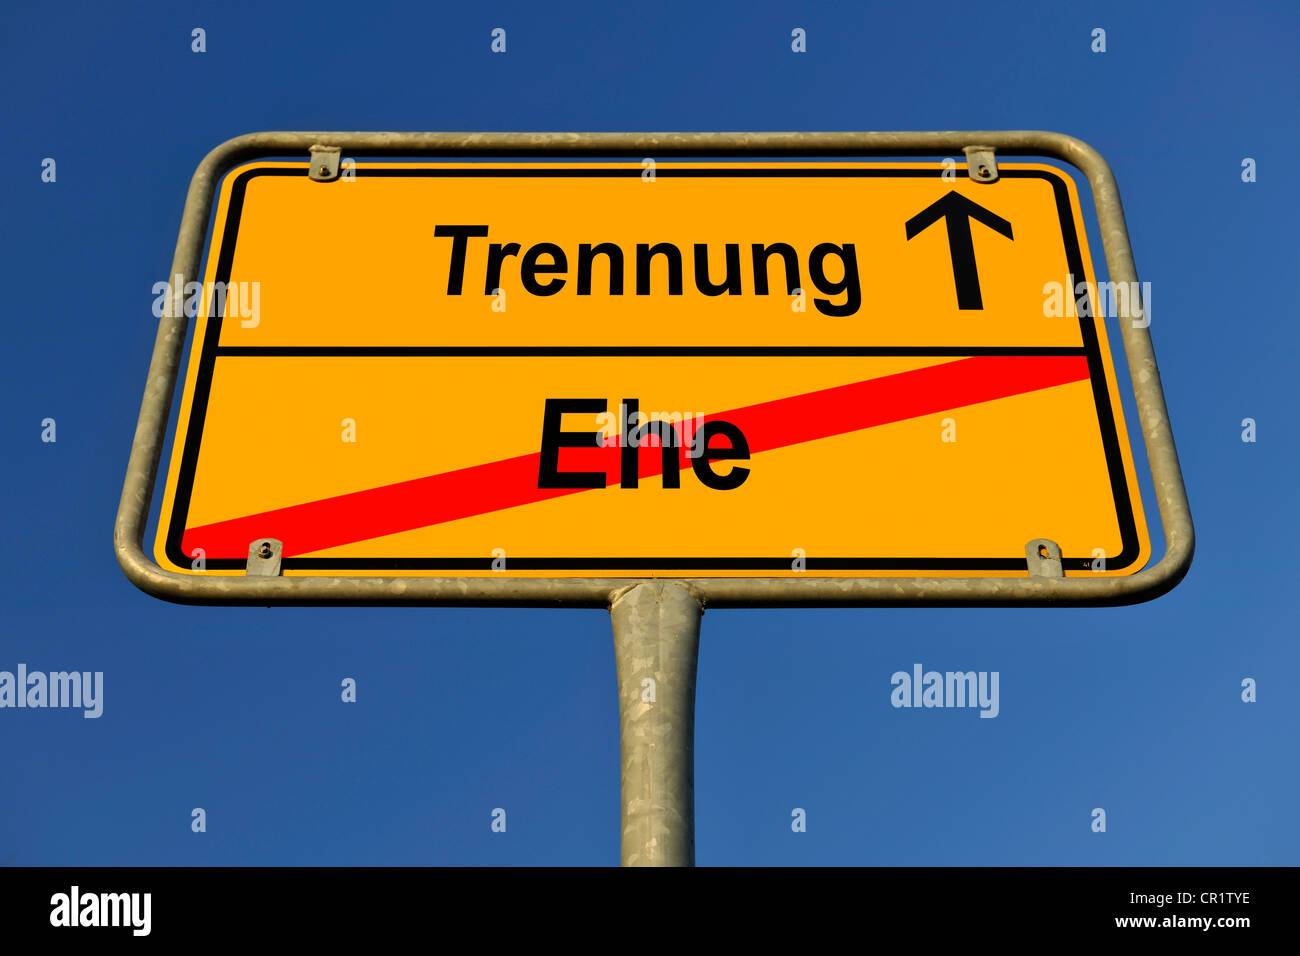 City limit sign, symbolic image for the way from Ehe to Trennung, German for going from being married to having - Stock Image